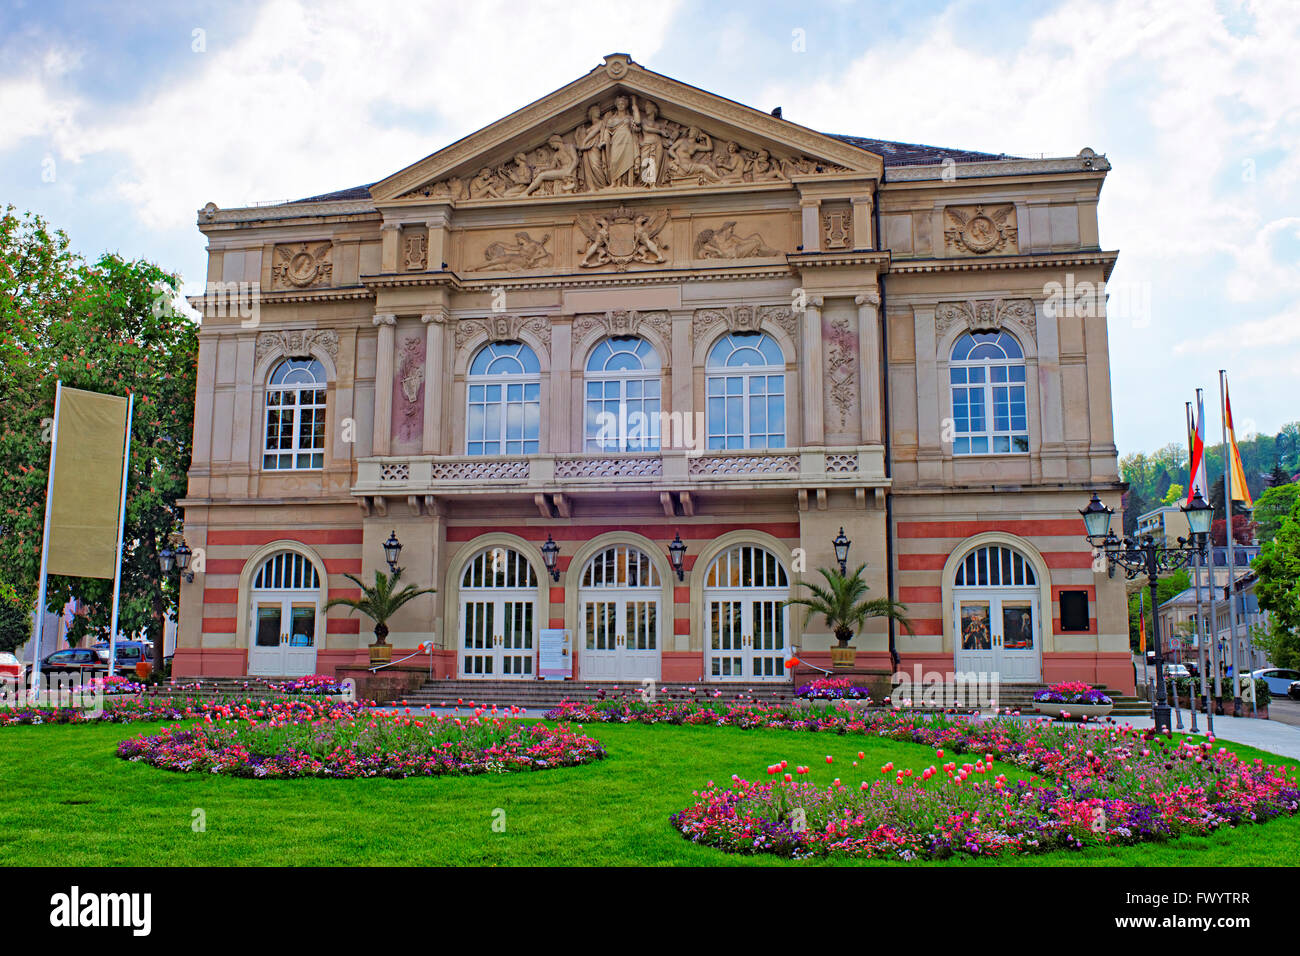 Street view to Baden-Baden Theater. Baden-Baden is a spa town. It is situated in Baden-Wurttemberg in Germany. Theater - Stock Image